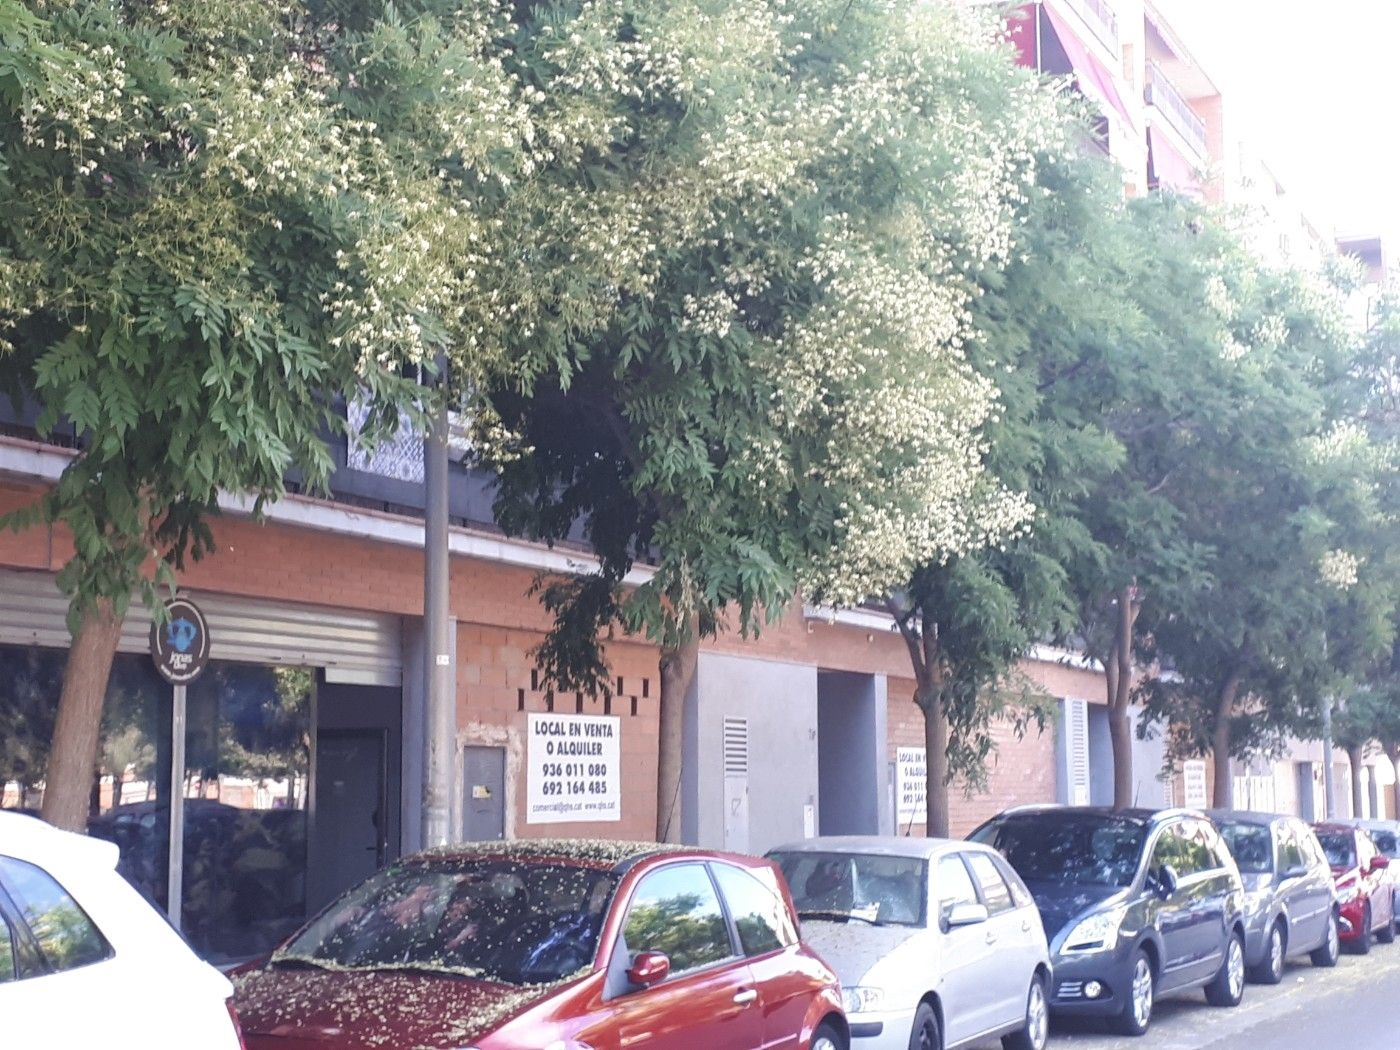 Affitto Locale commerciale in Carrer jaume i, 70. Oportunidad¡